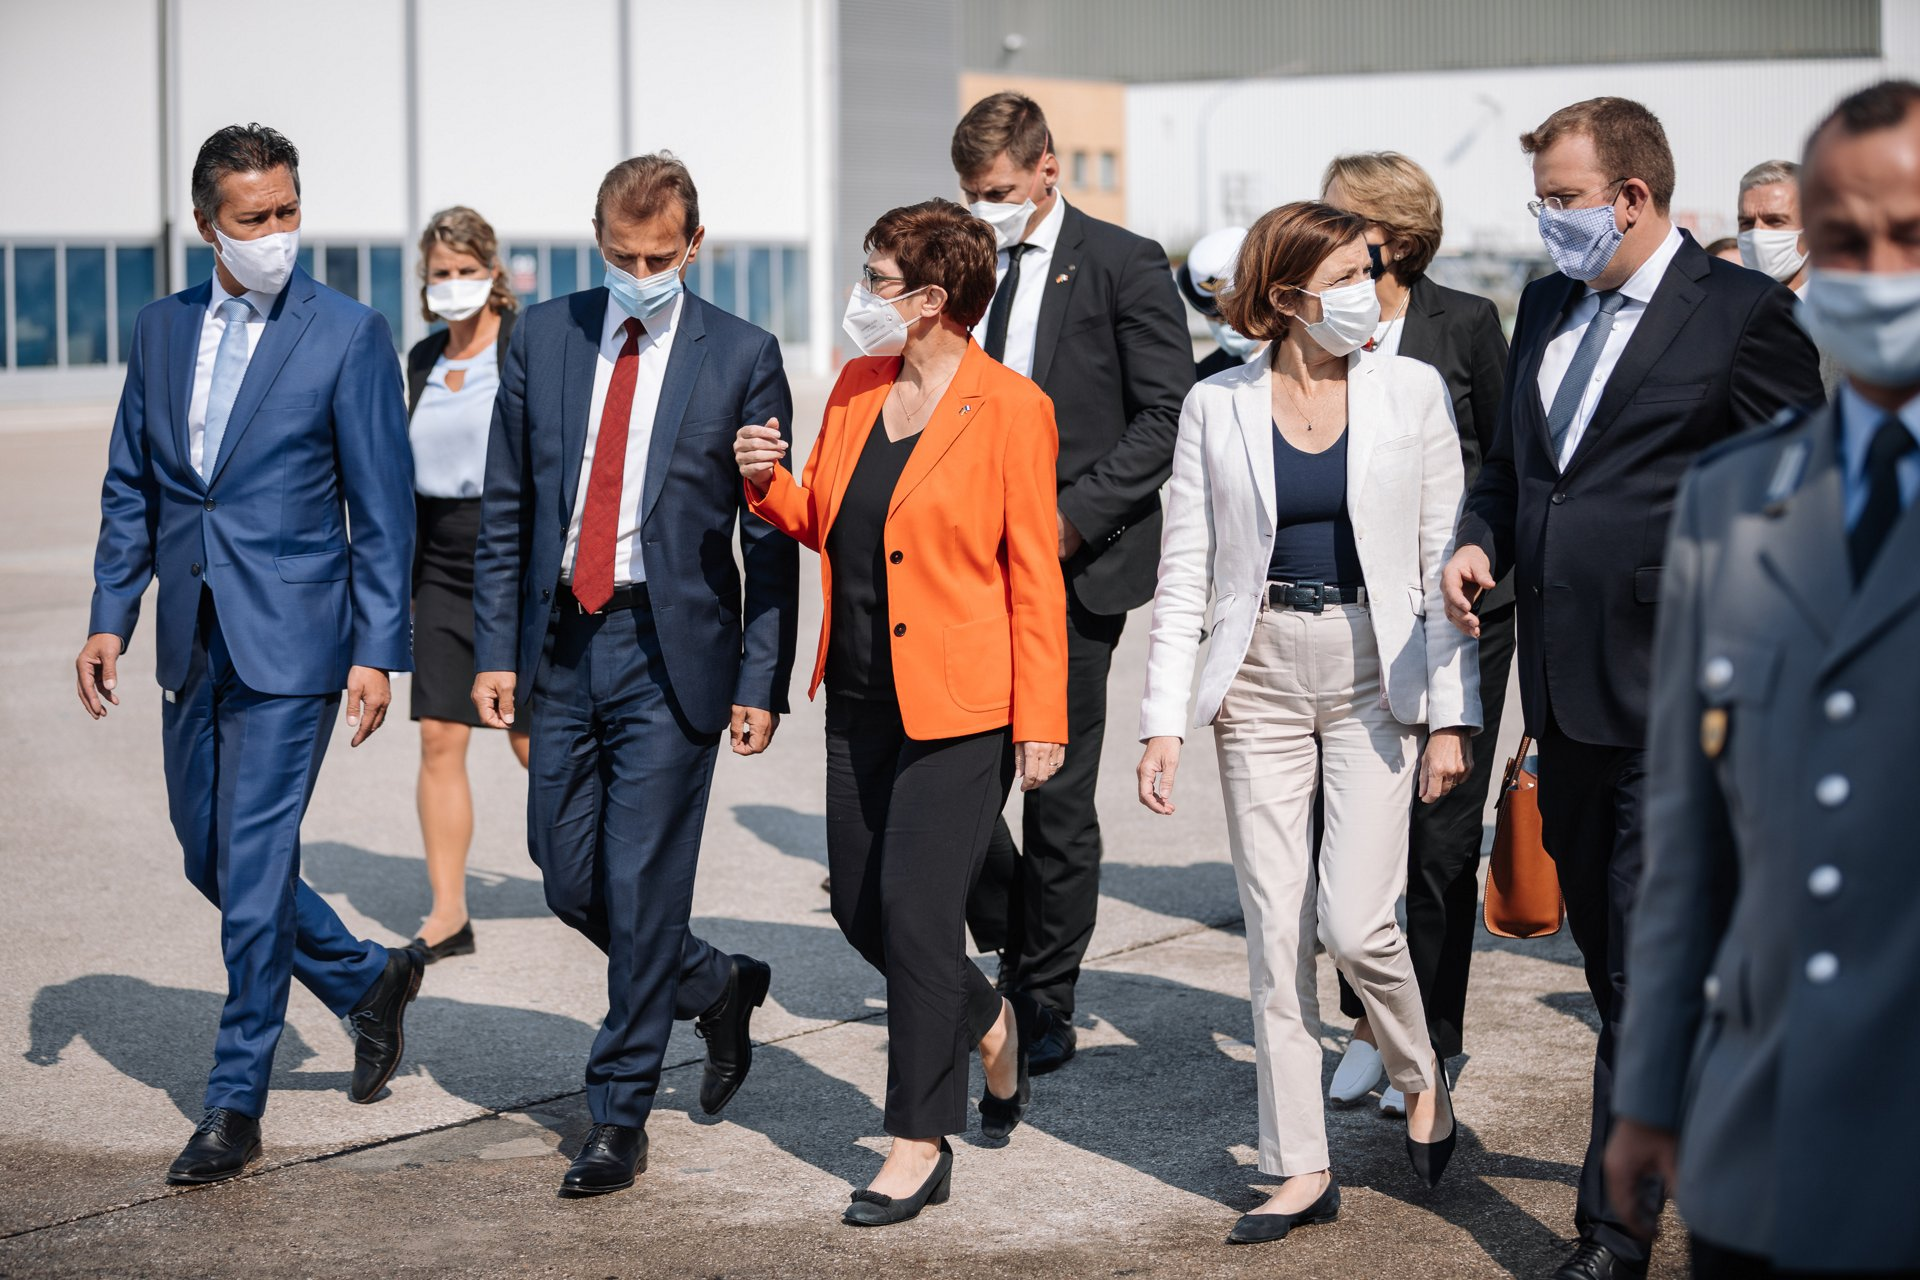 September 17th 2020 - Defence Ministers of Germany and France met with Airbus CEO Guillaume Faury, Airbus Defence and Space CEO Dirk Hoke